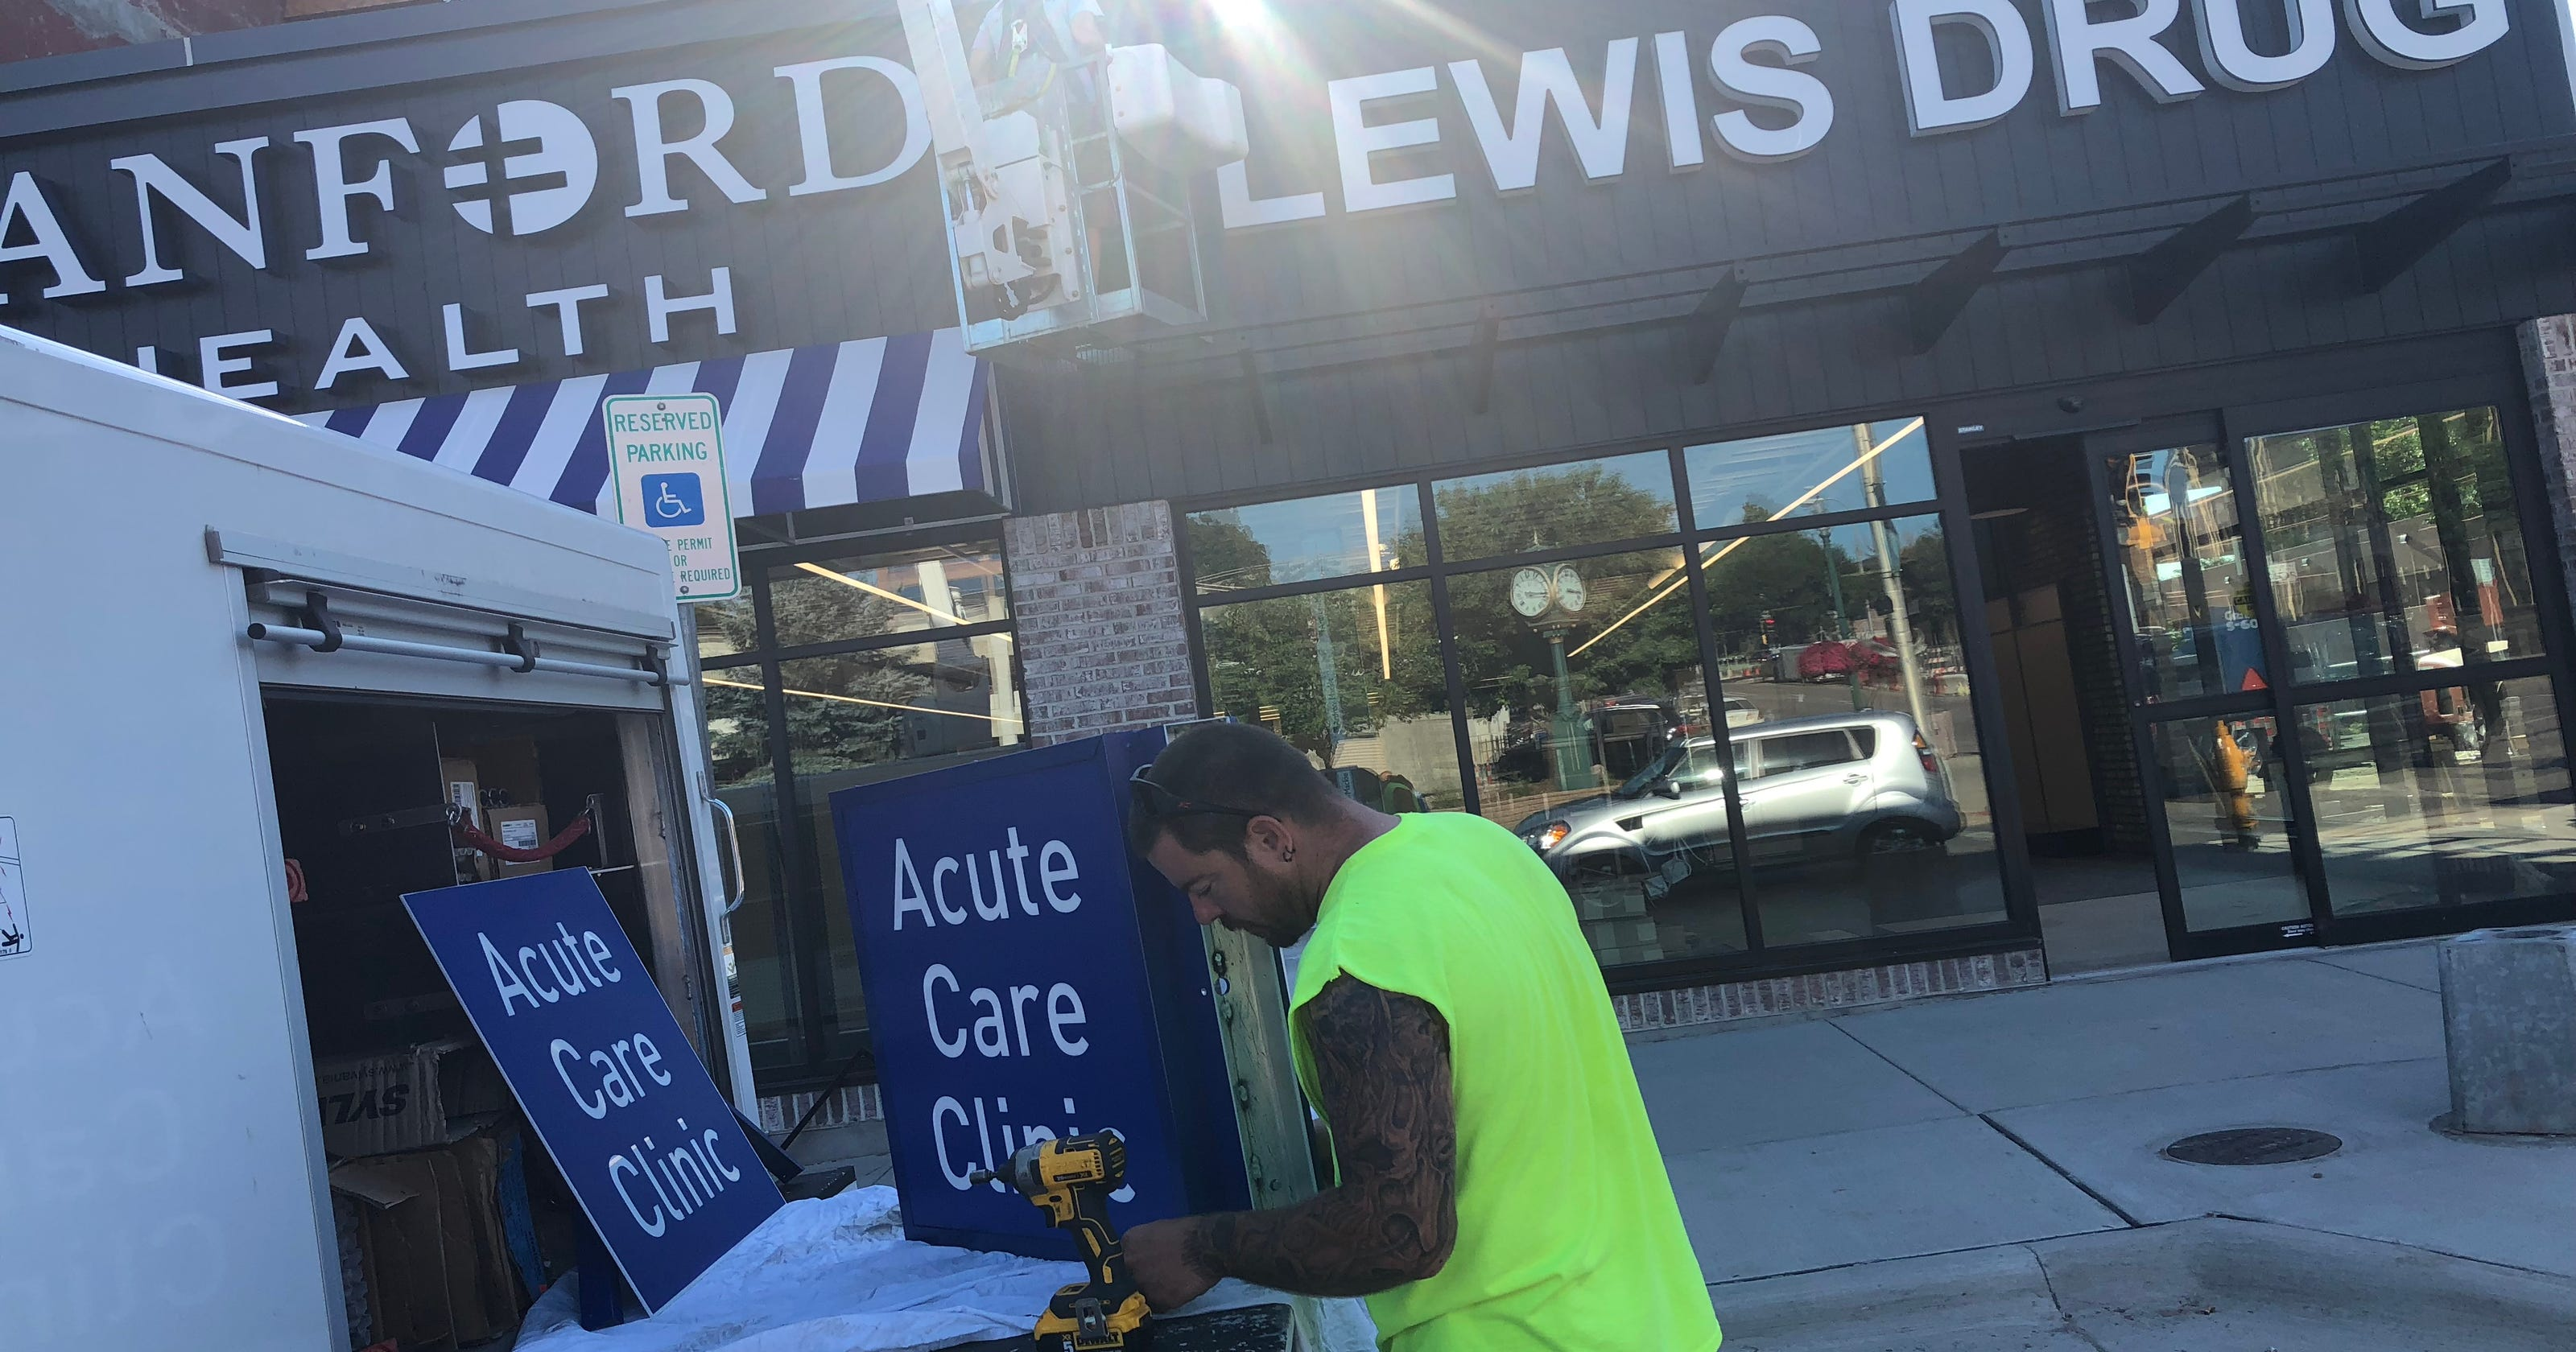 Signs Are Up At Downtown Lewis Drug And Sanford Clinic